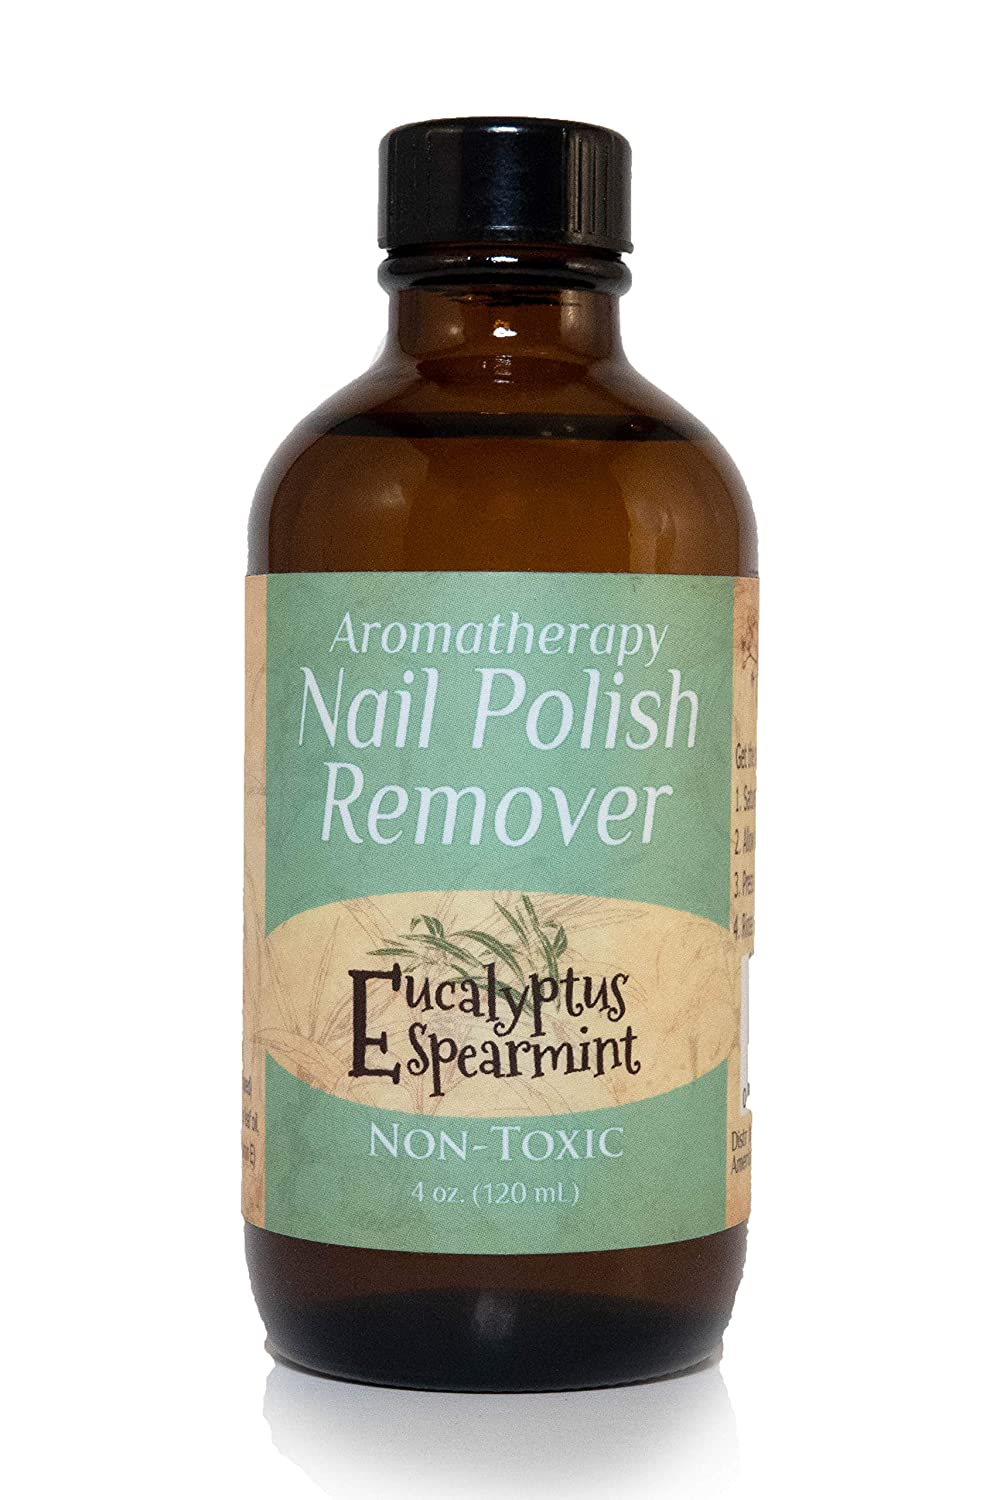 Marley Marie Naturals Nail Polish Remover - Eucalyptus Spearmint (Stress Relief) 4 oz. bottle